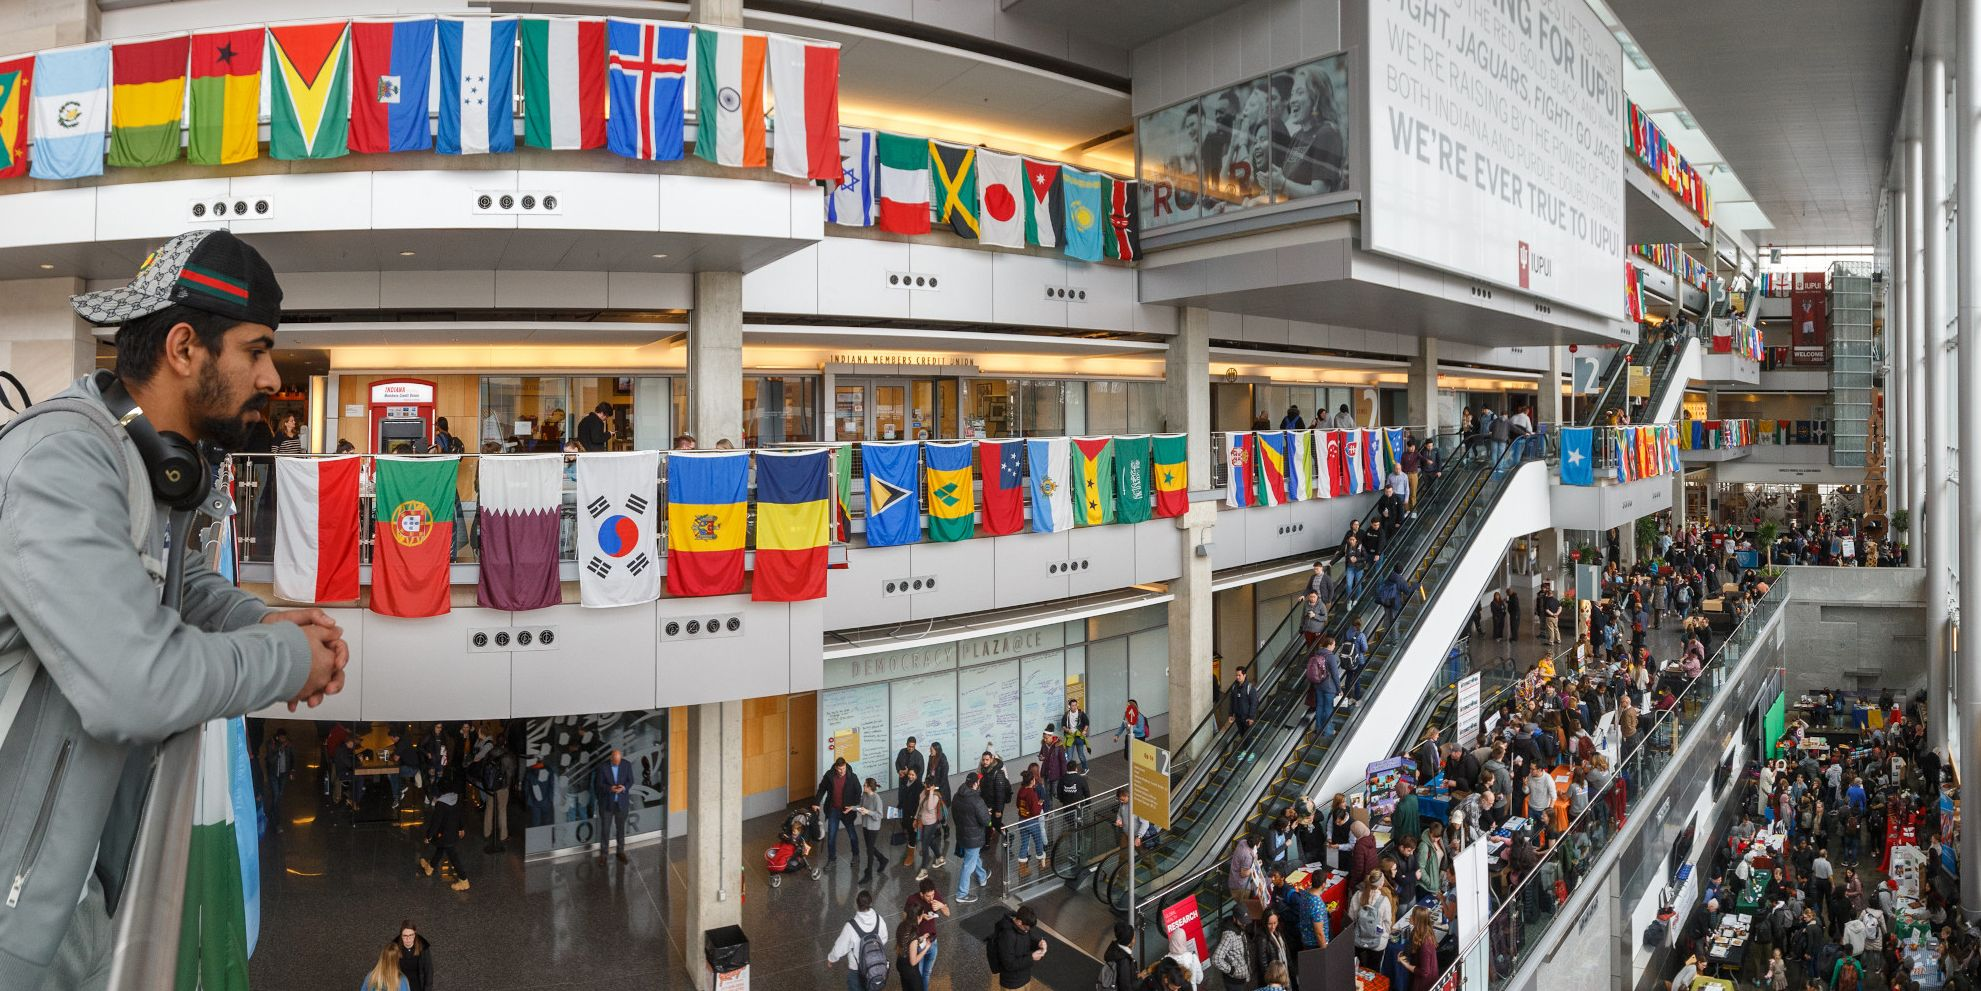 A crowded Campus Center is filled with guests for the International Festival